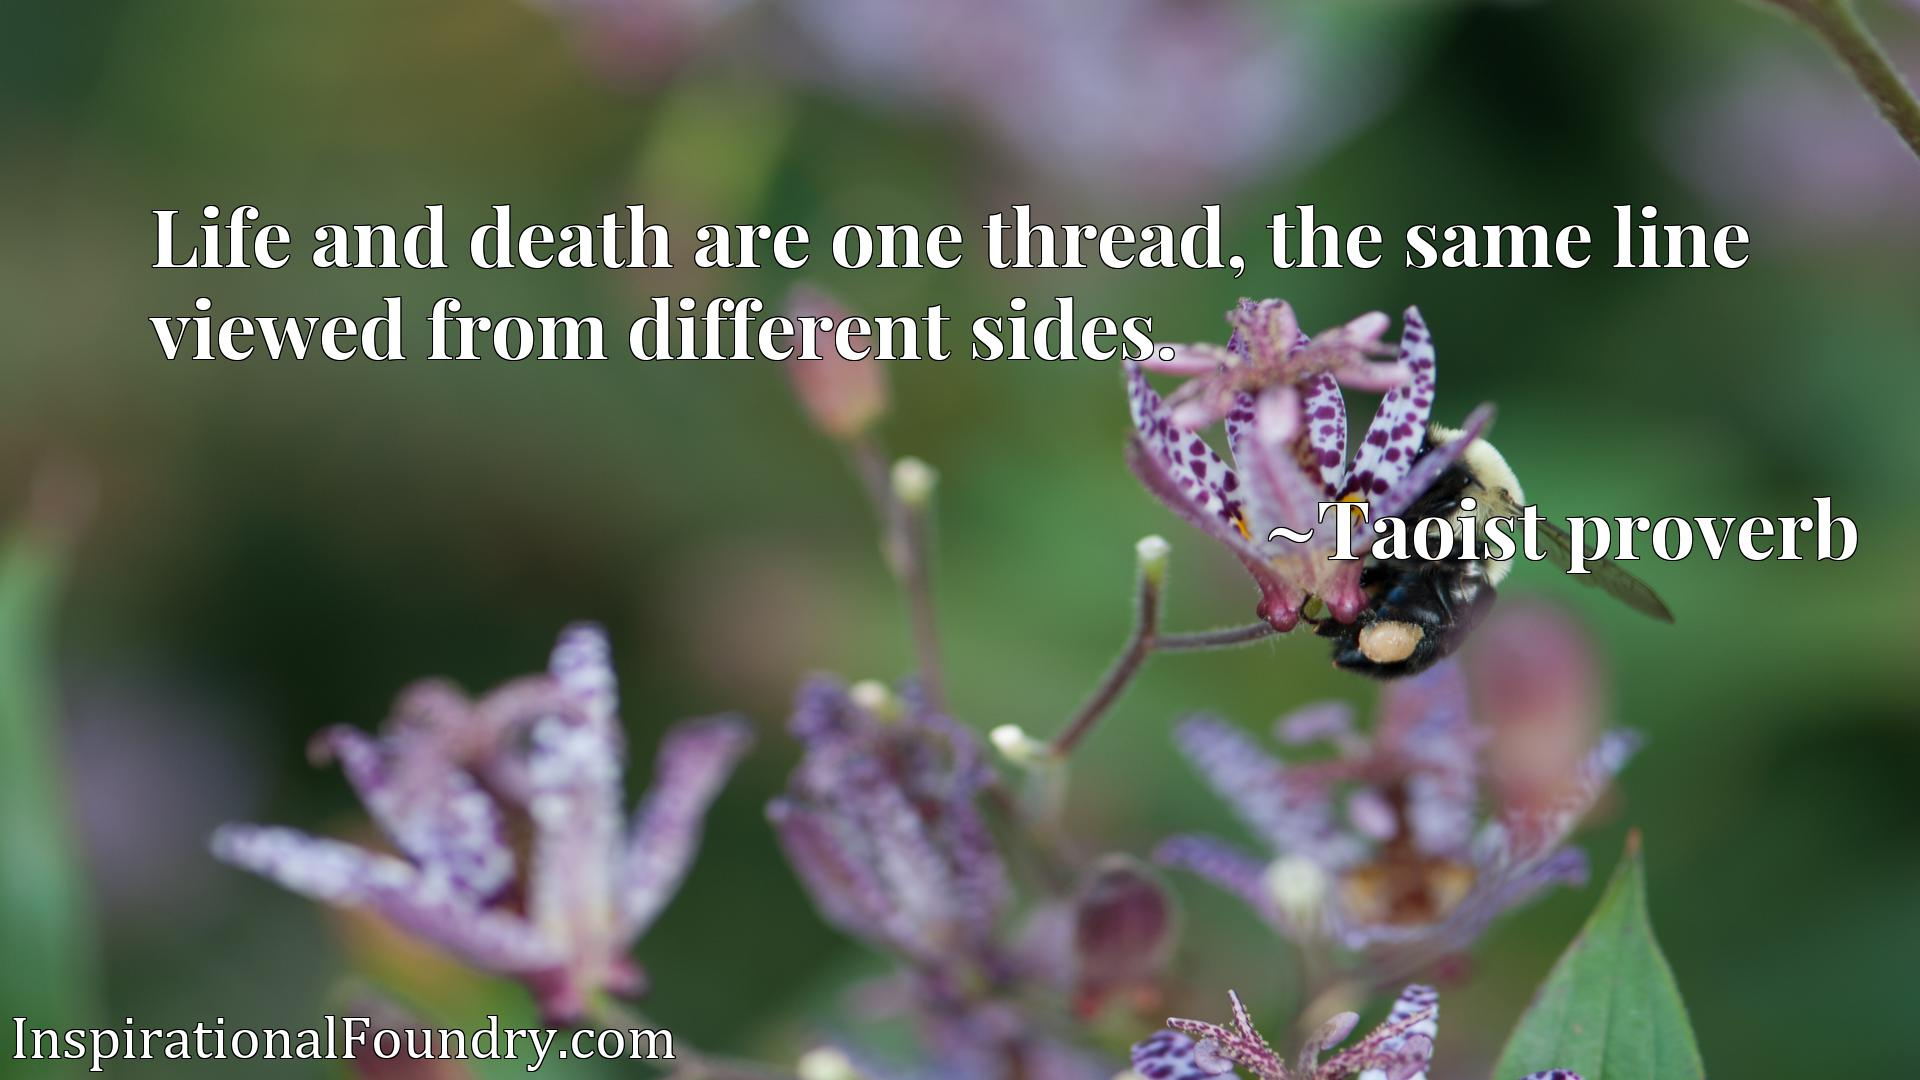 Life and death are one thread, the same line viewed from different sides.